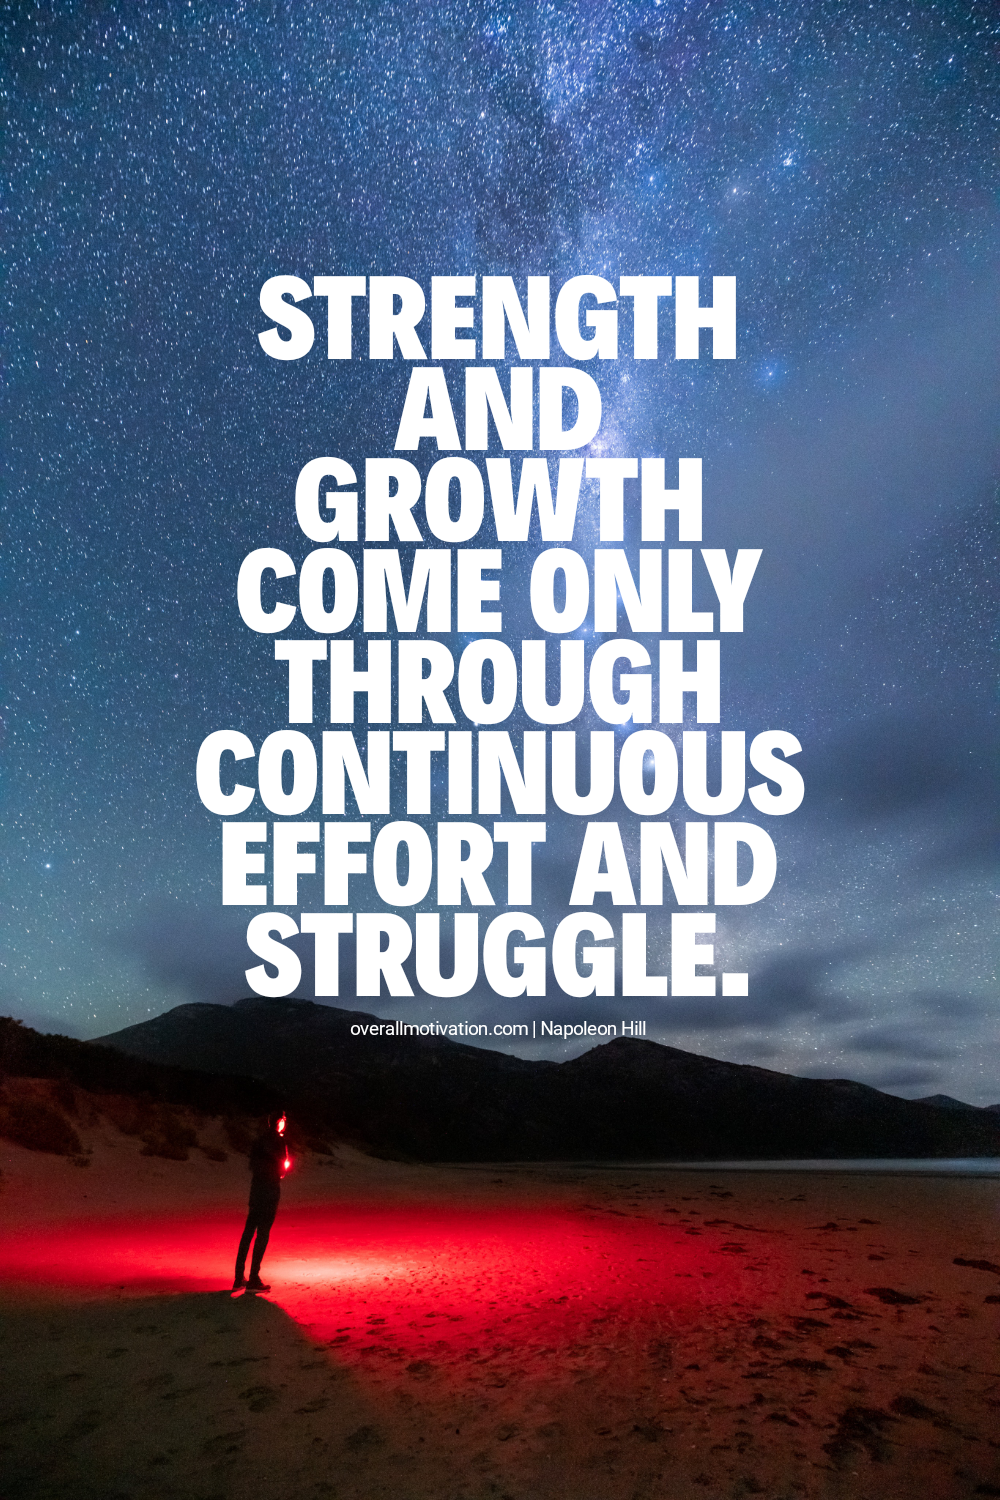 Strength and growth come only_Napoleon Hill quotes